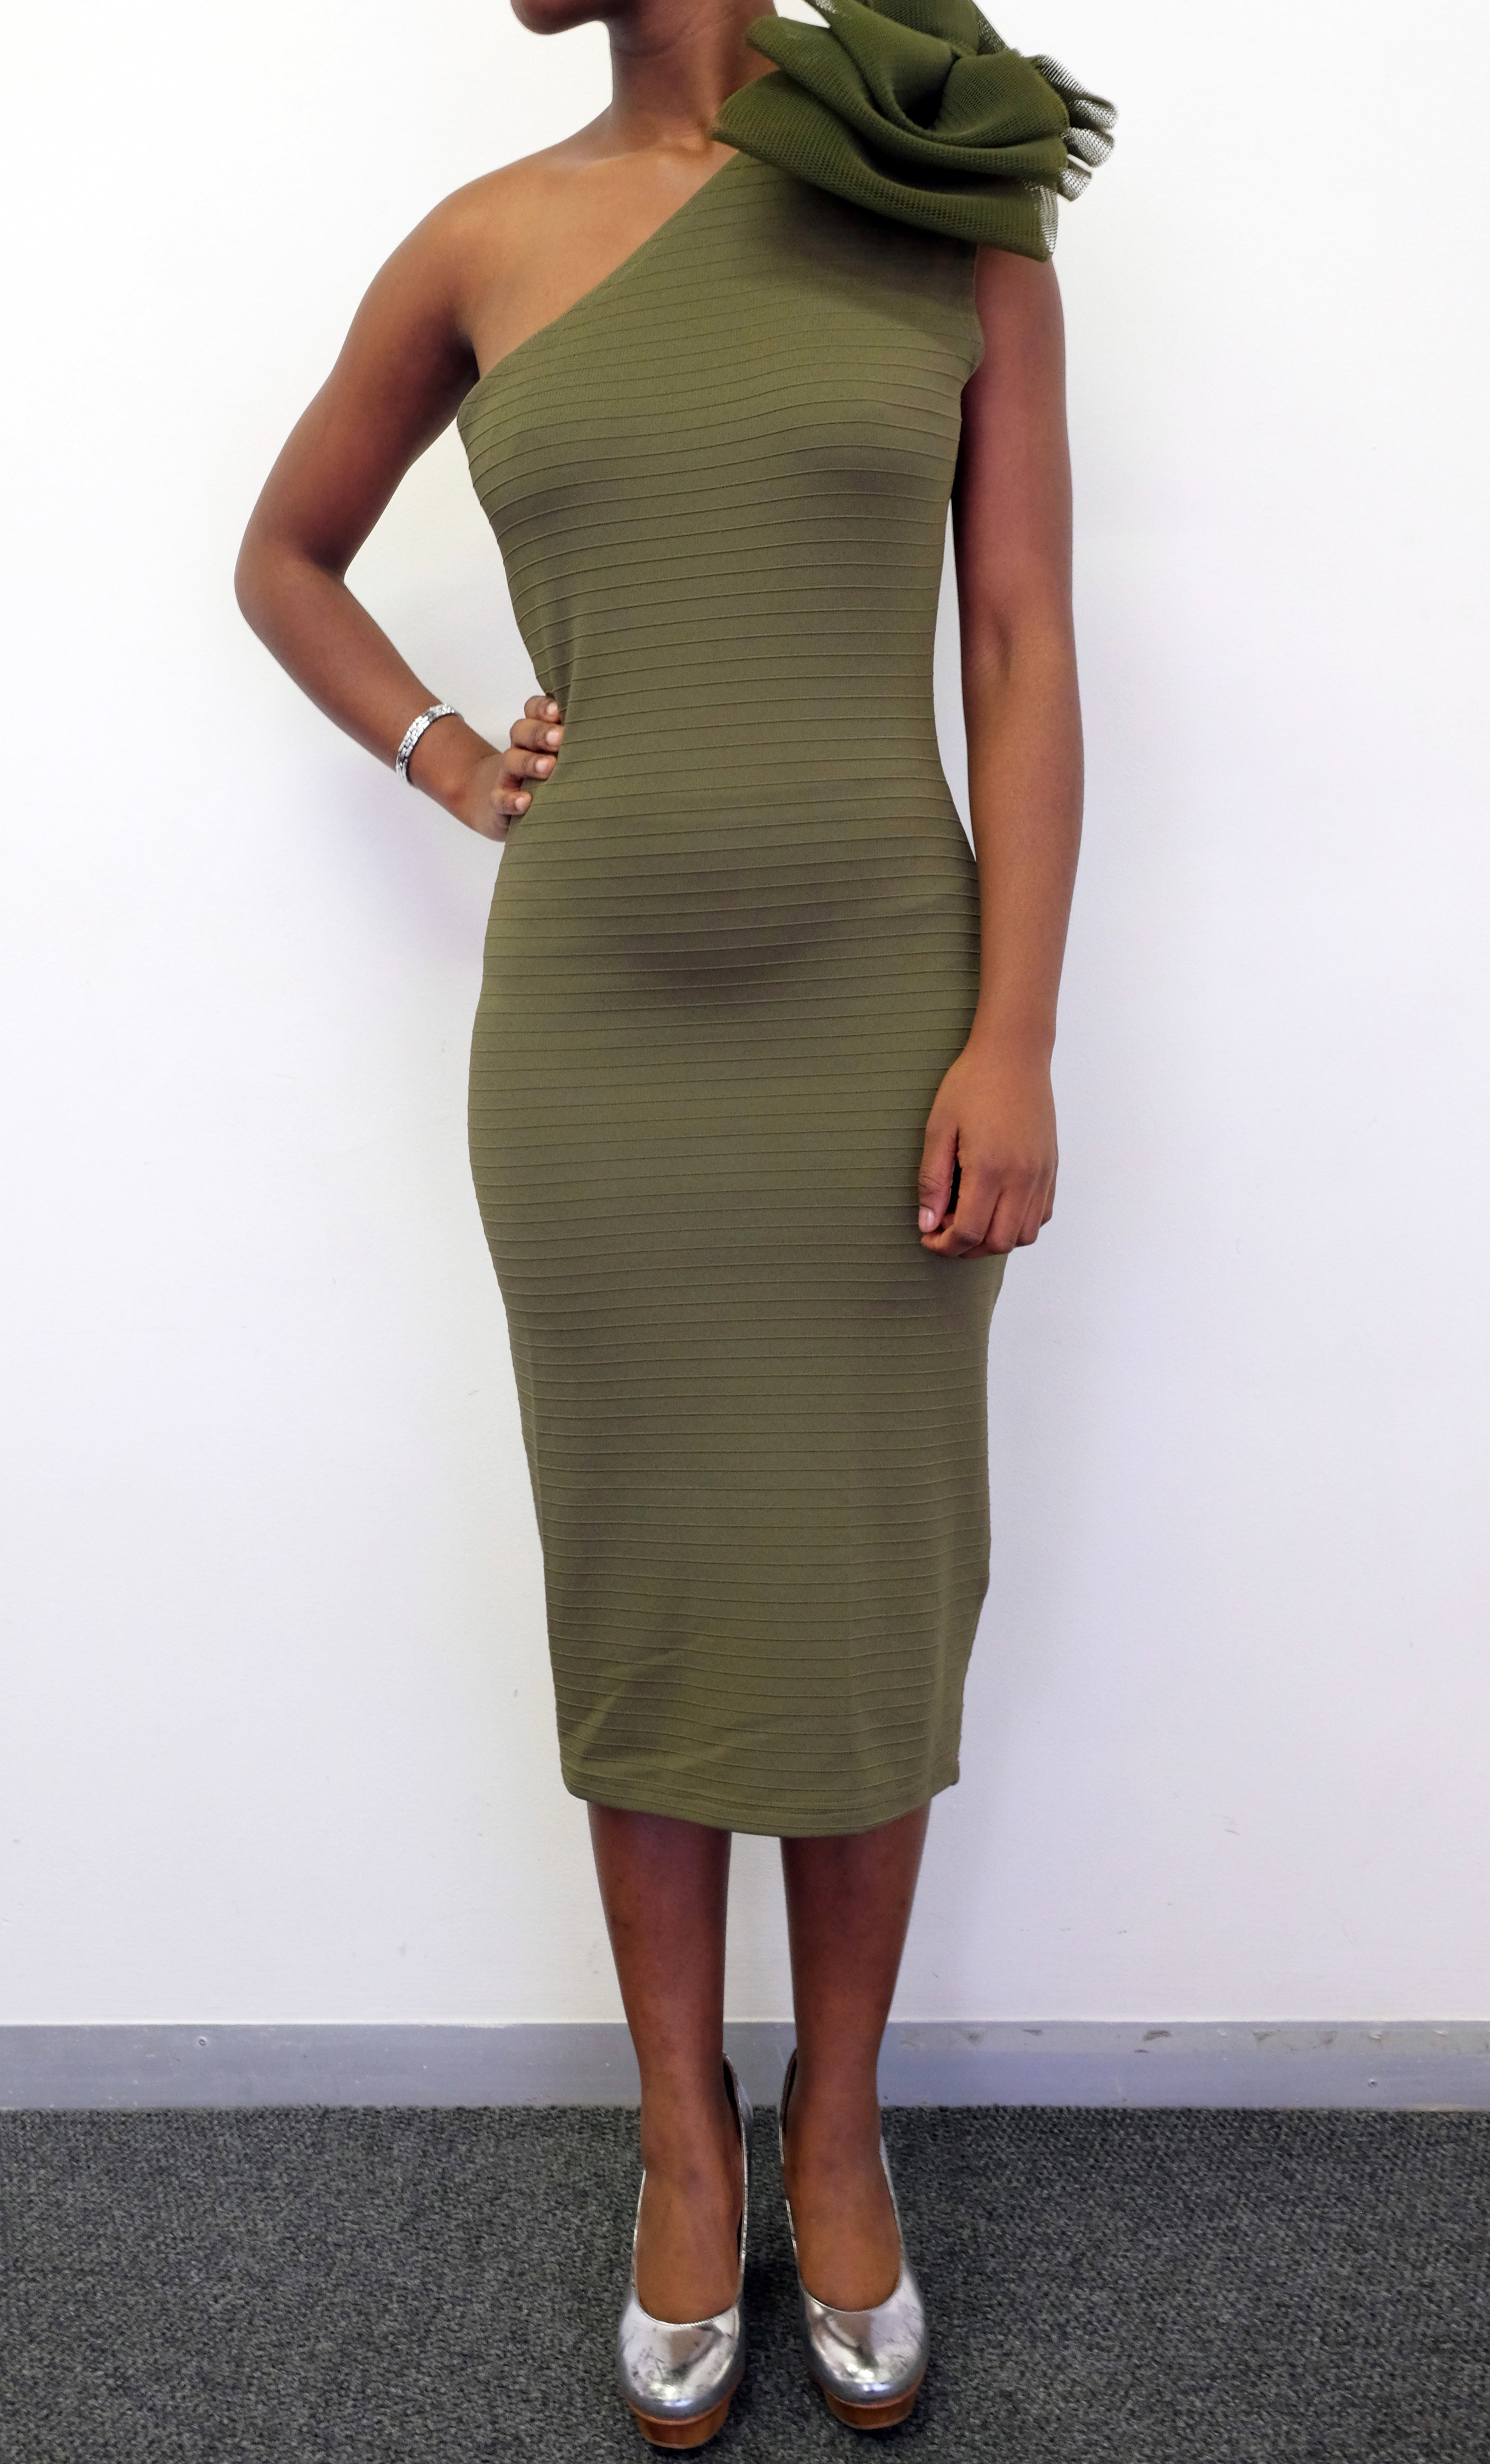 Gert-Johan Coetzee One Shoulder Bow Dress, Col. Olive, Size S 00003